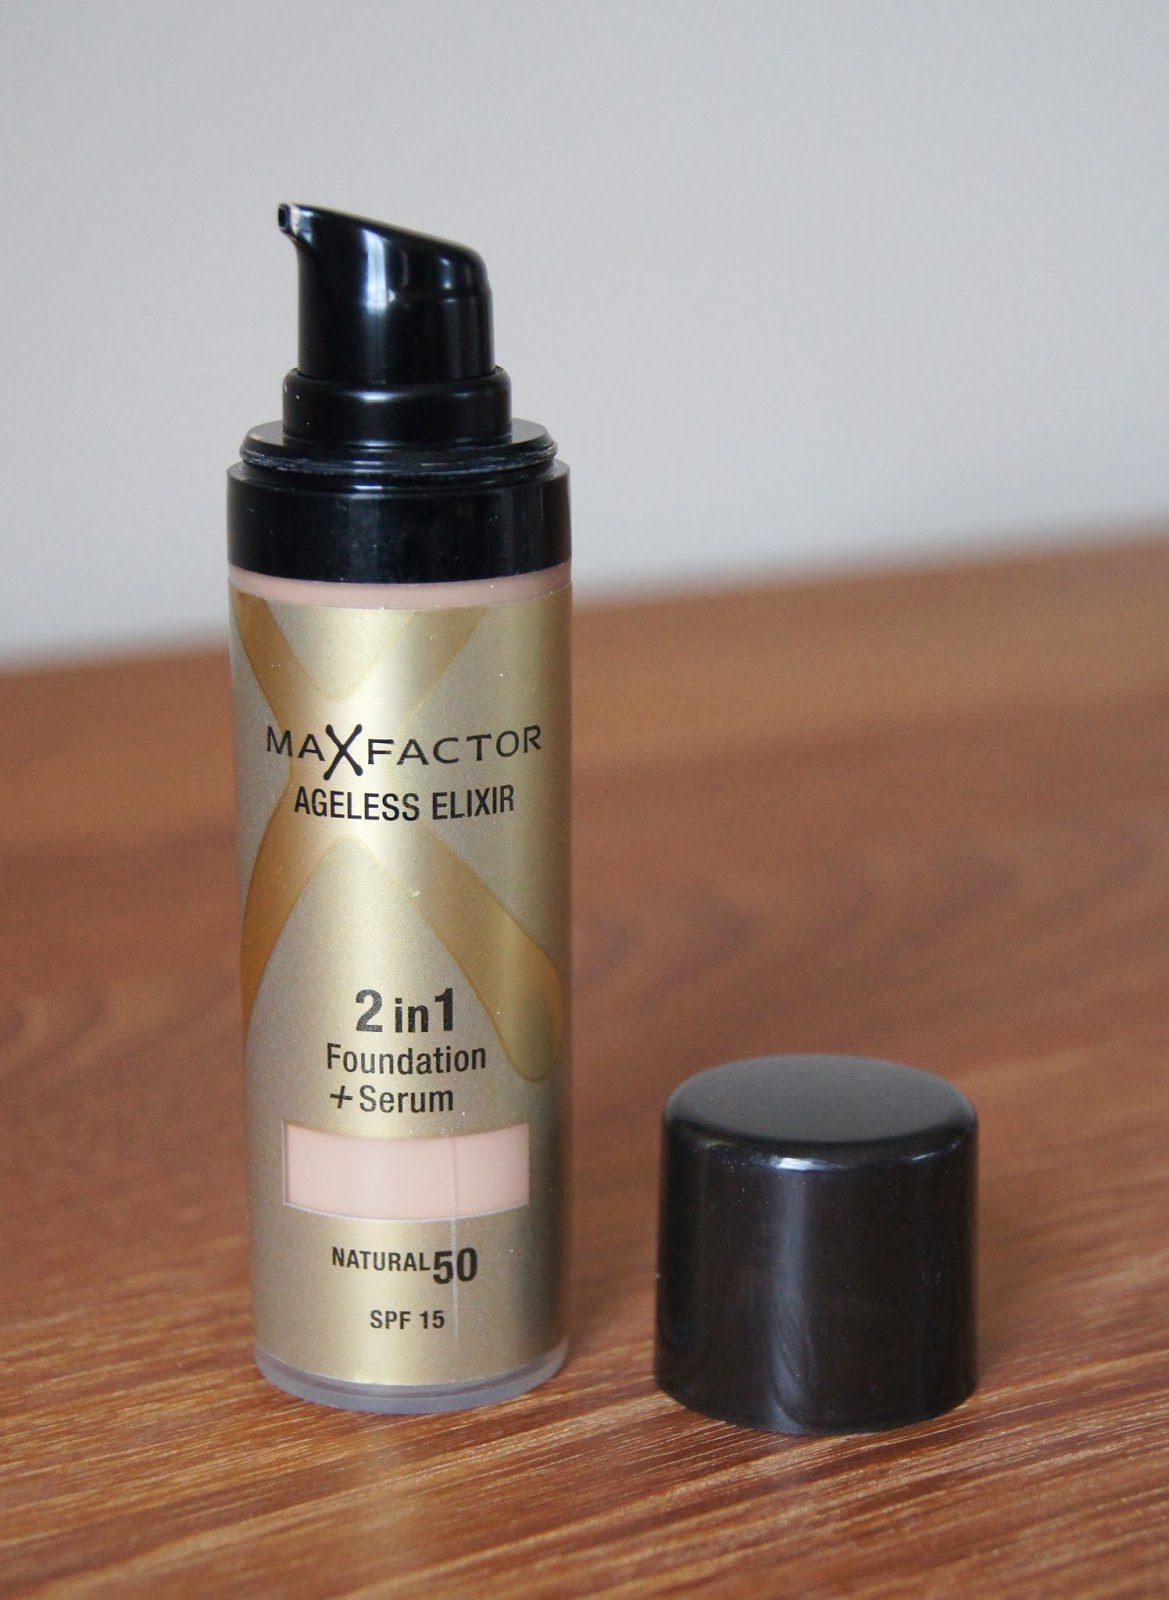 max factor 2 in 1 foundation and serum natural